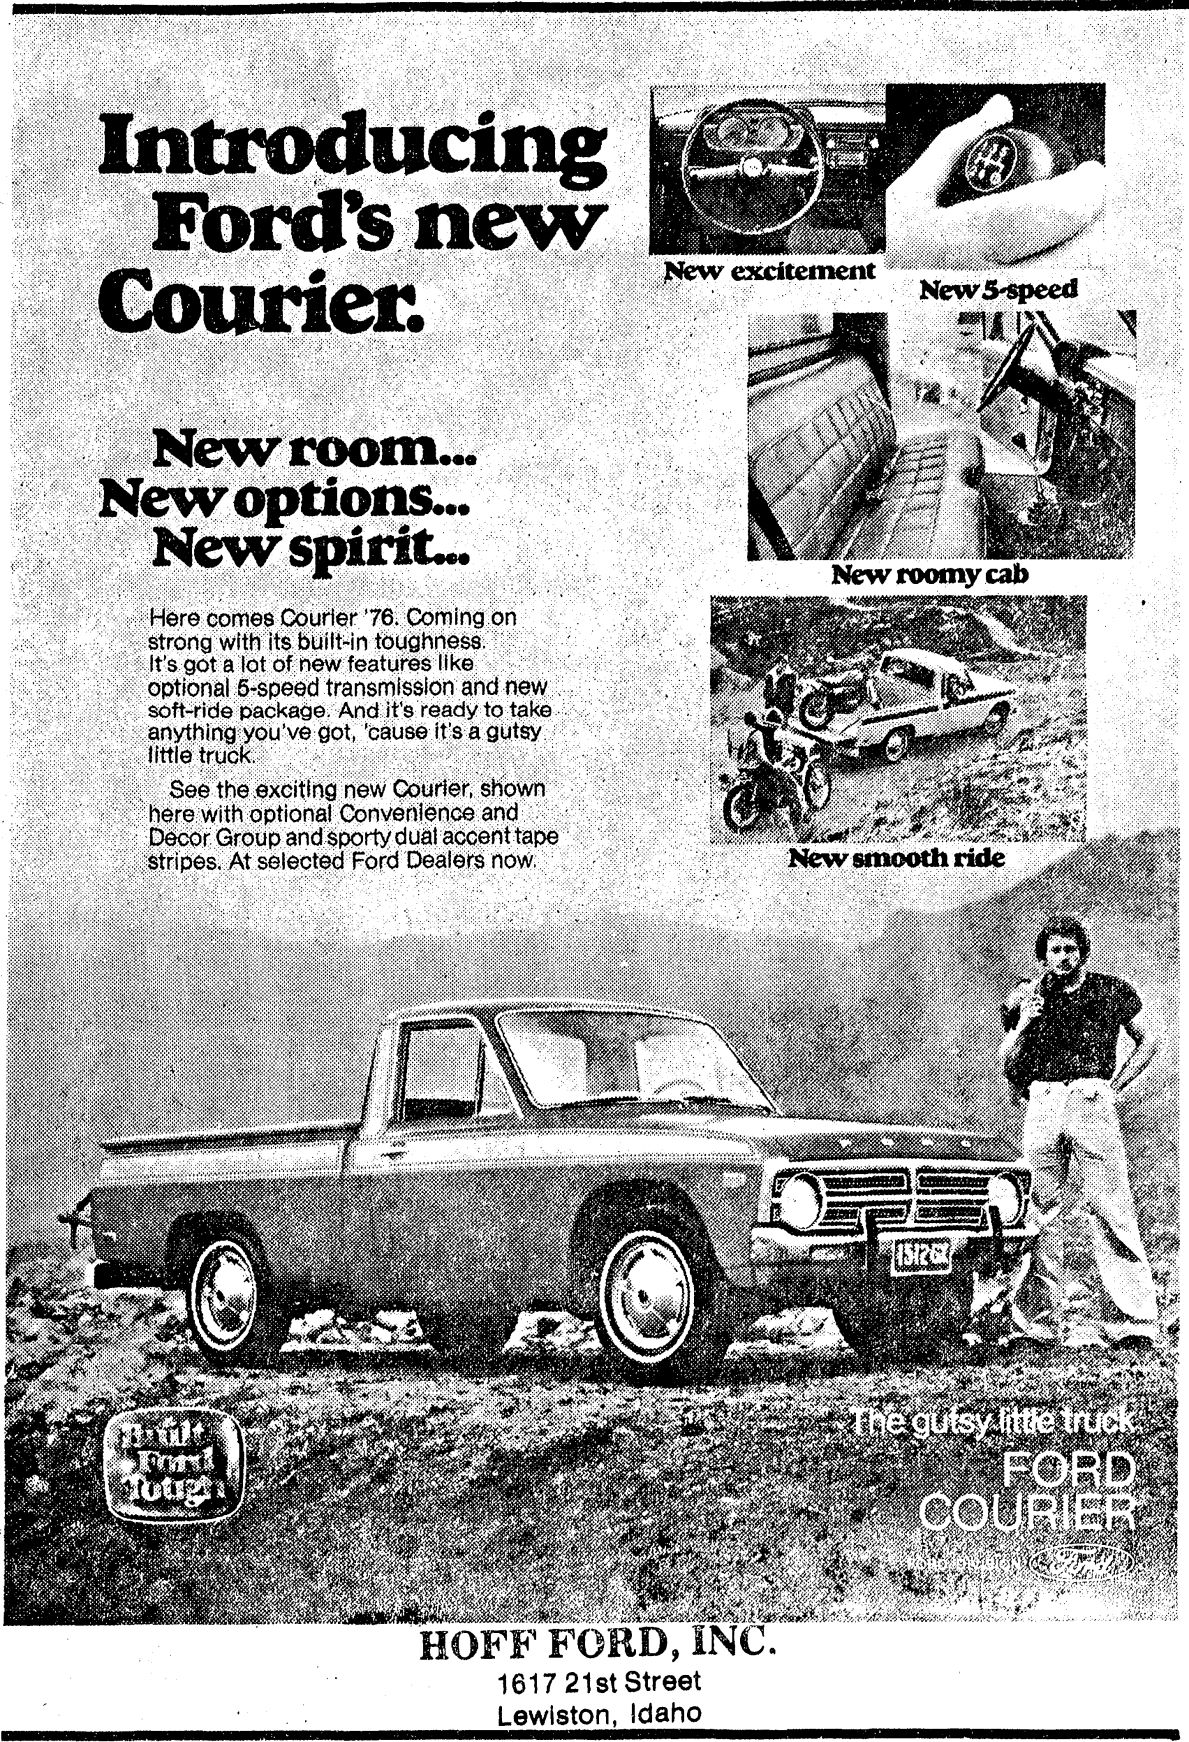 FB 06031976 Ford Courier.jpg